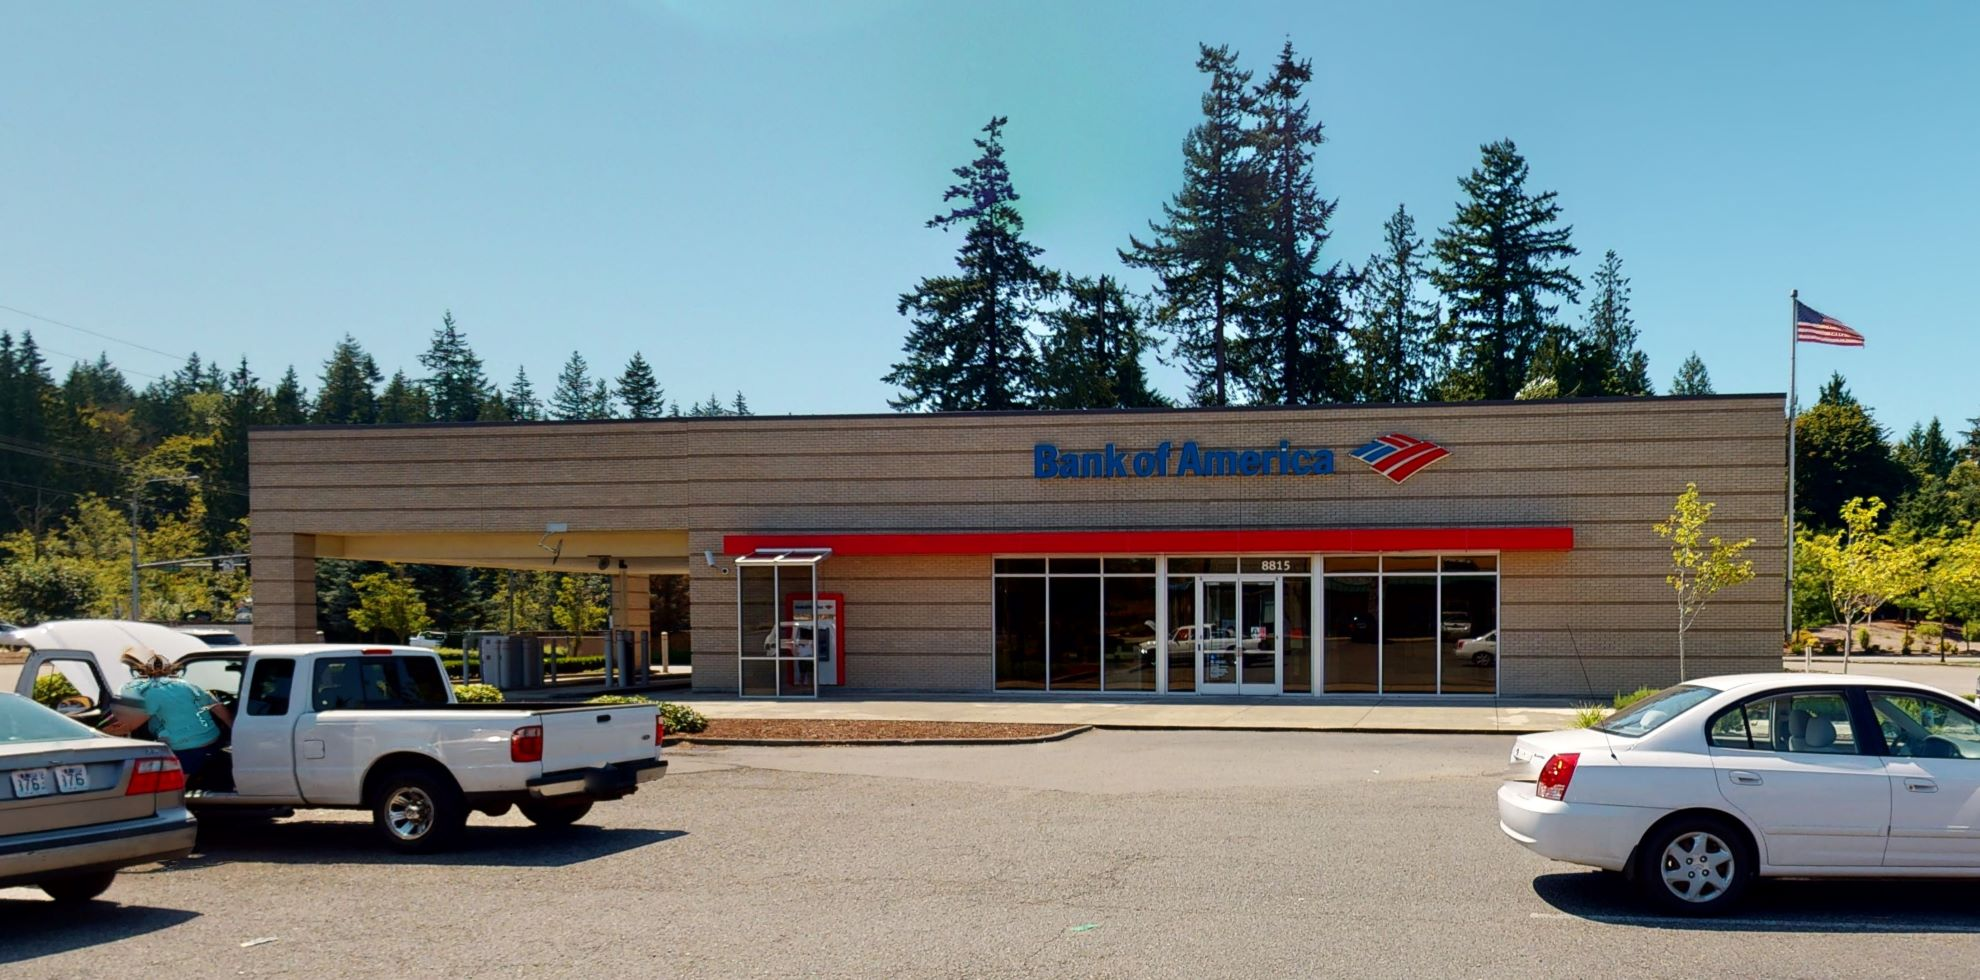 Bank of America financial center with drive-thru ATM and teller   8815 34th Ave NE, Tulalip, WA 98271